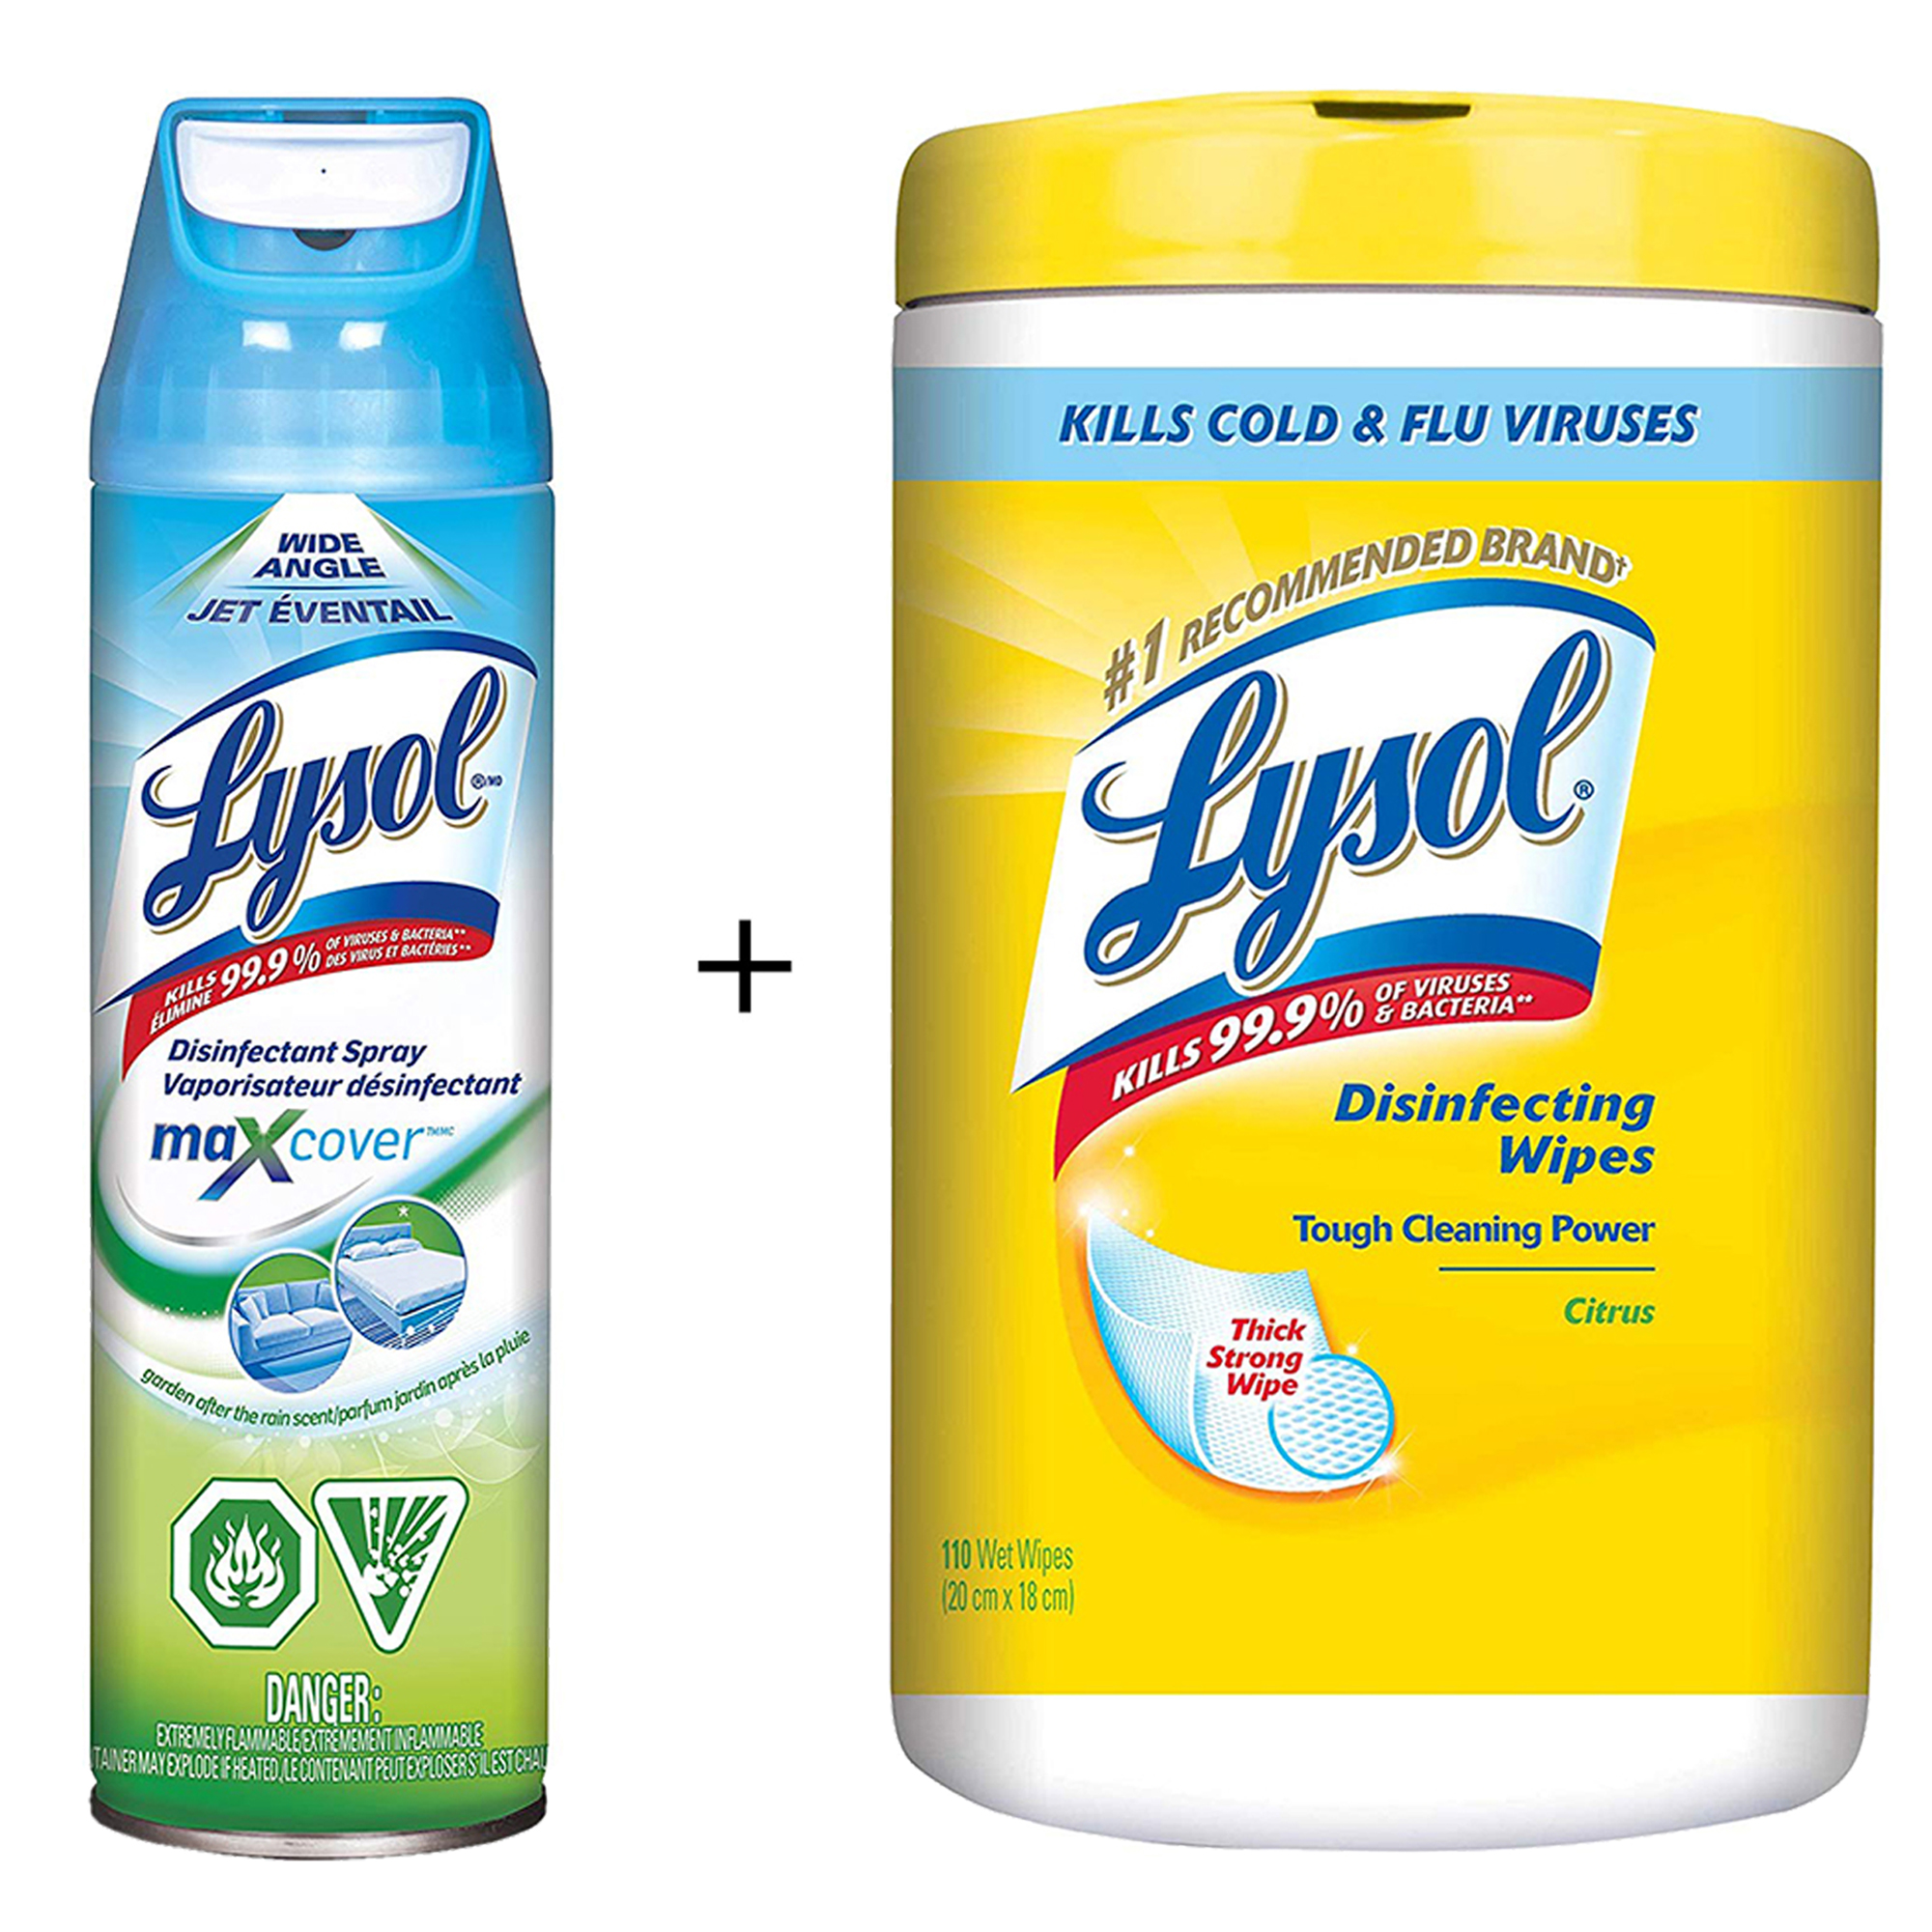 Lysol Max Cover Disinfectant Mist, Garden After Rain, 425g, 2X Wider Coverage + Lysol Disinfectant Surface Wipes, Citrus, 110 Count - image 1 of 1